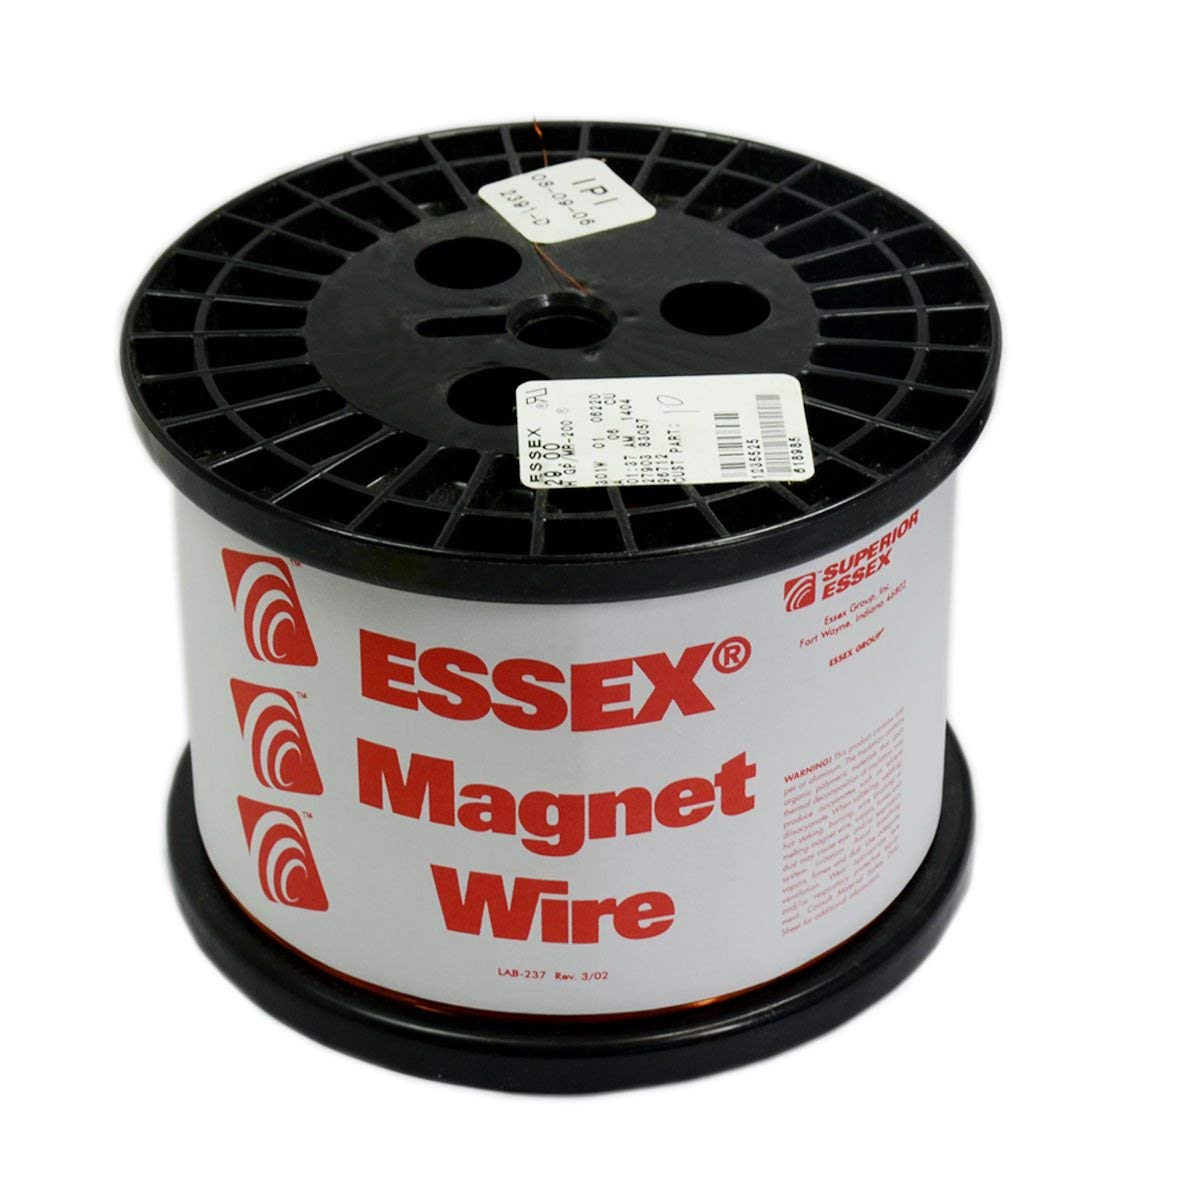 Magnet Wire 25 AWG Enameled Heavy Build HTAIH GP/MR-200 Essex Brand 10 LB Spool Research Industrial Applications and Personal Projects